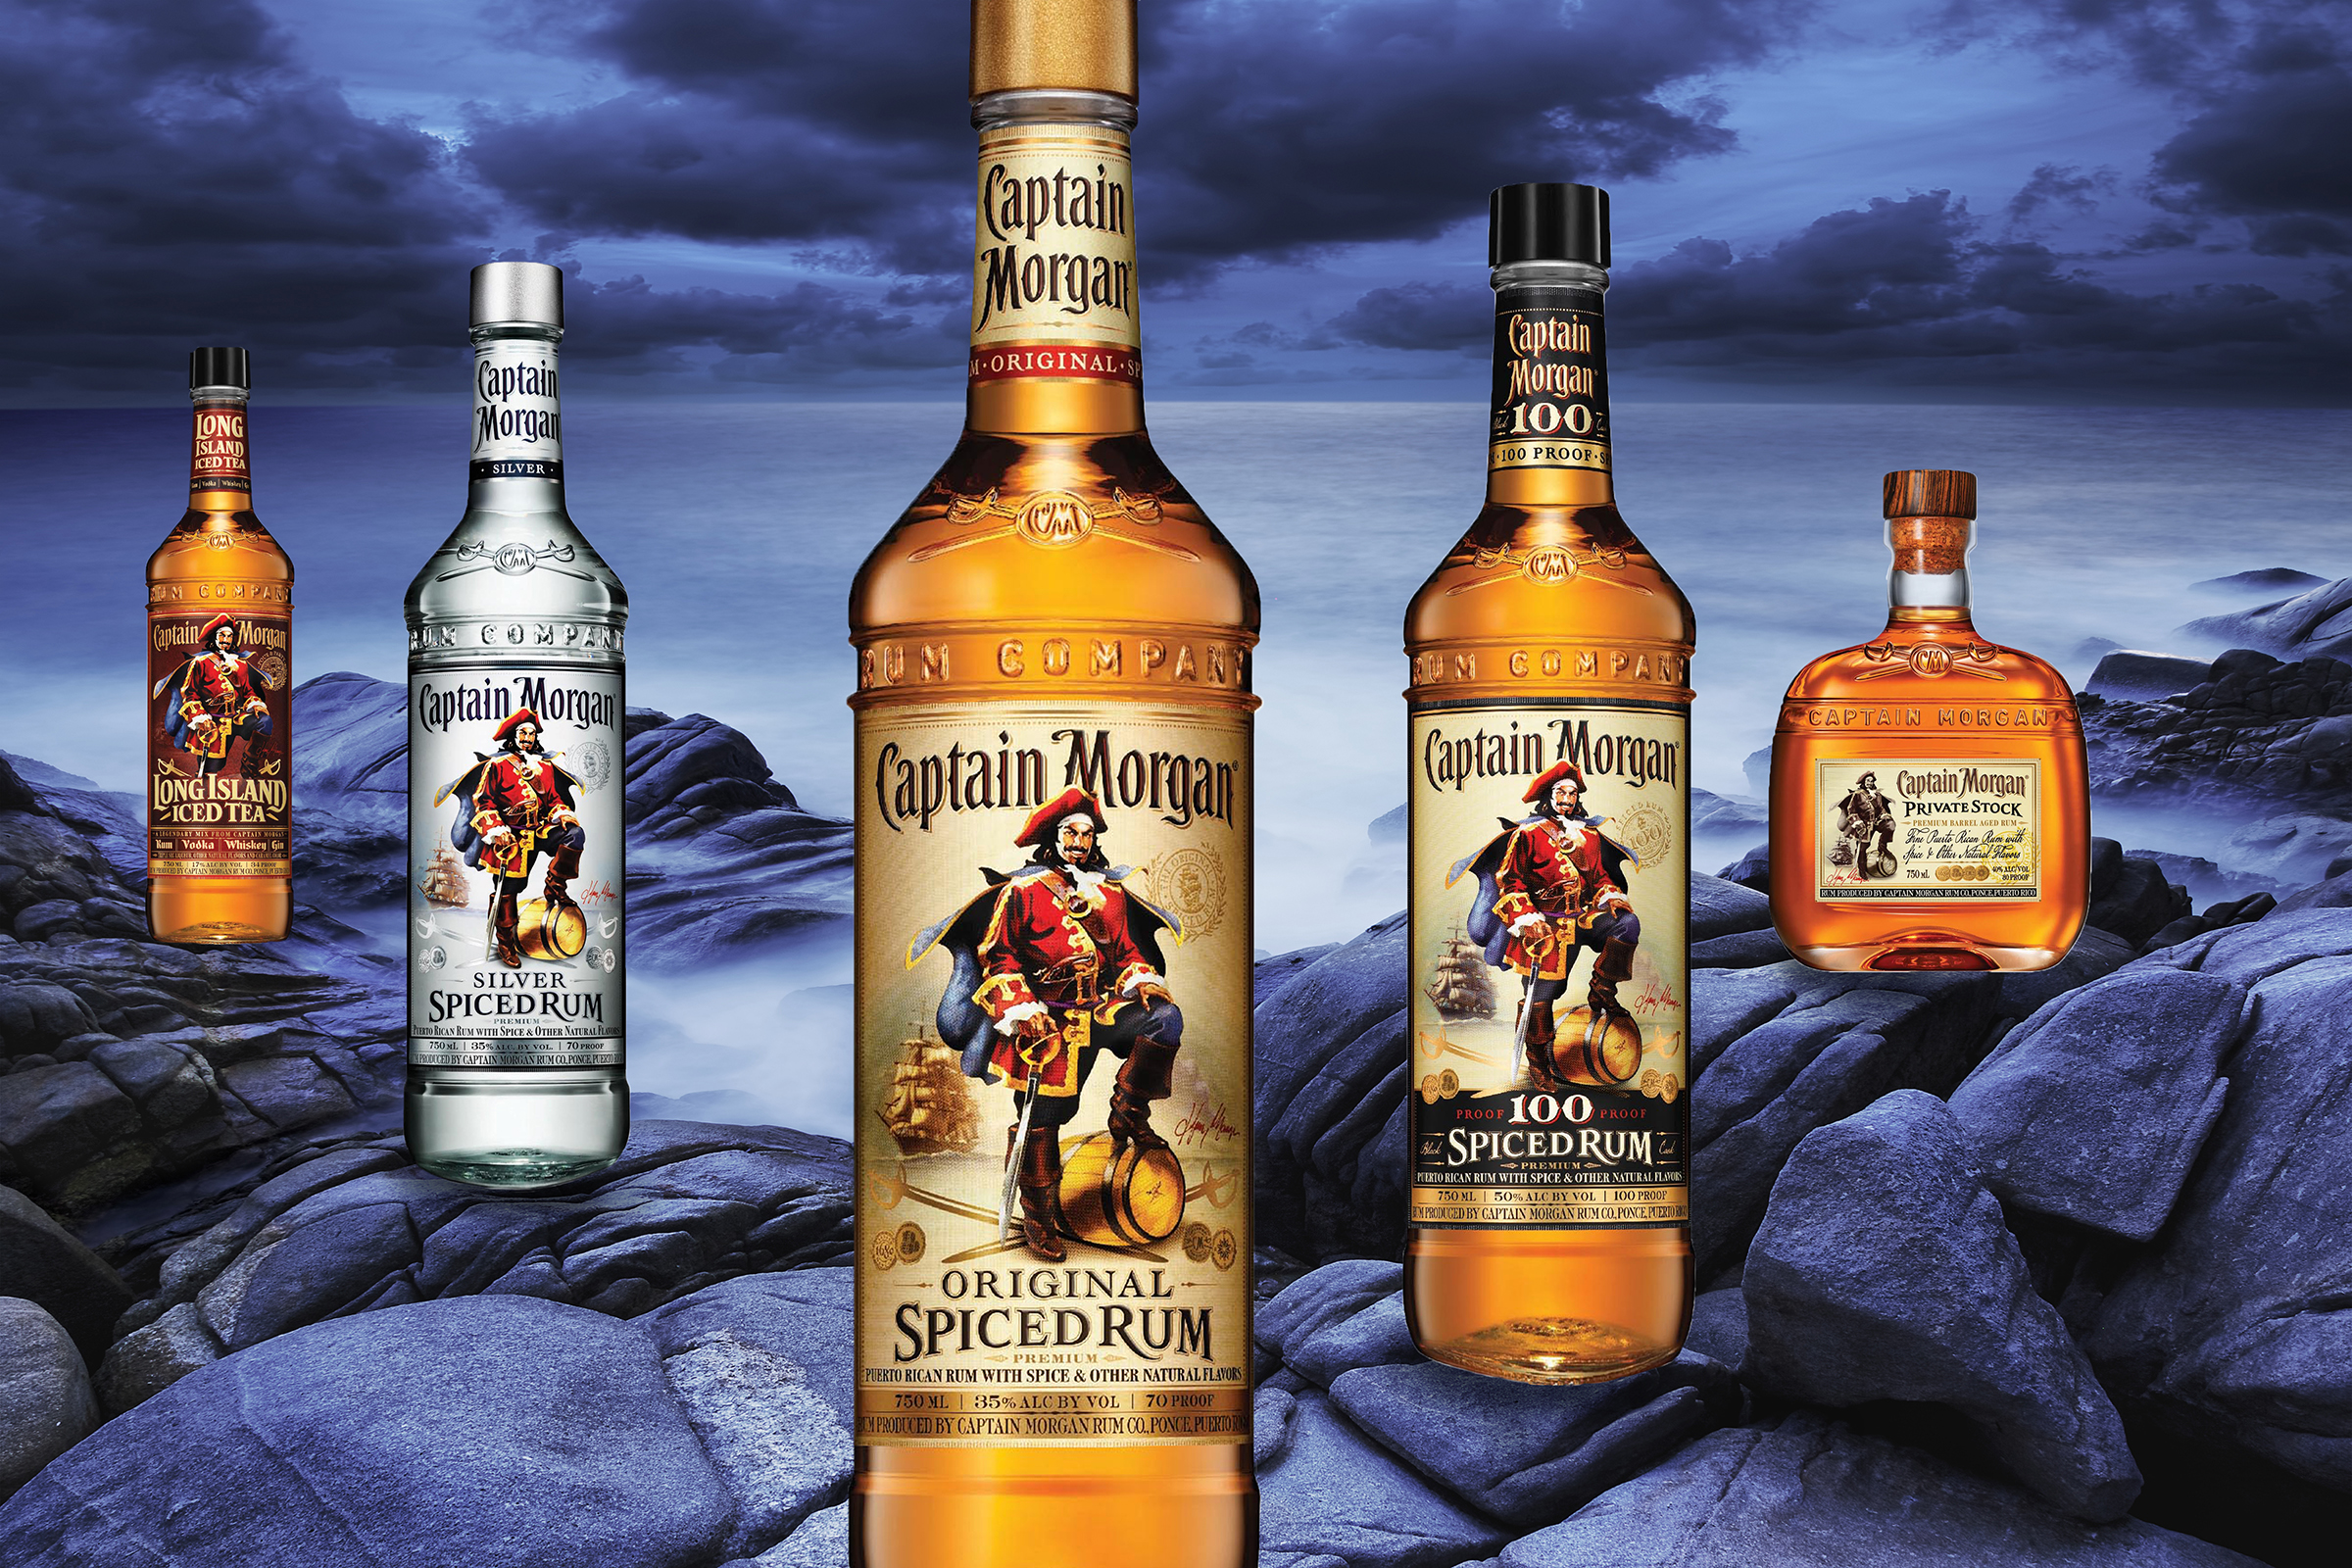 Captain Morgan Lineup Beach LowRez.jpg